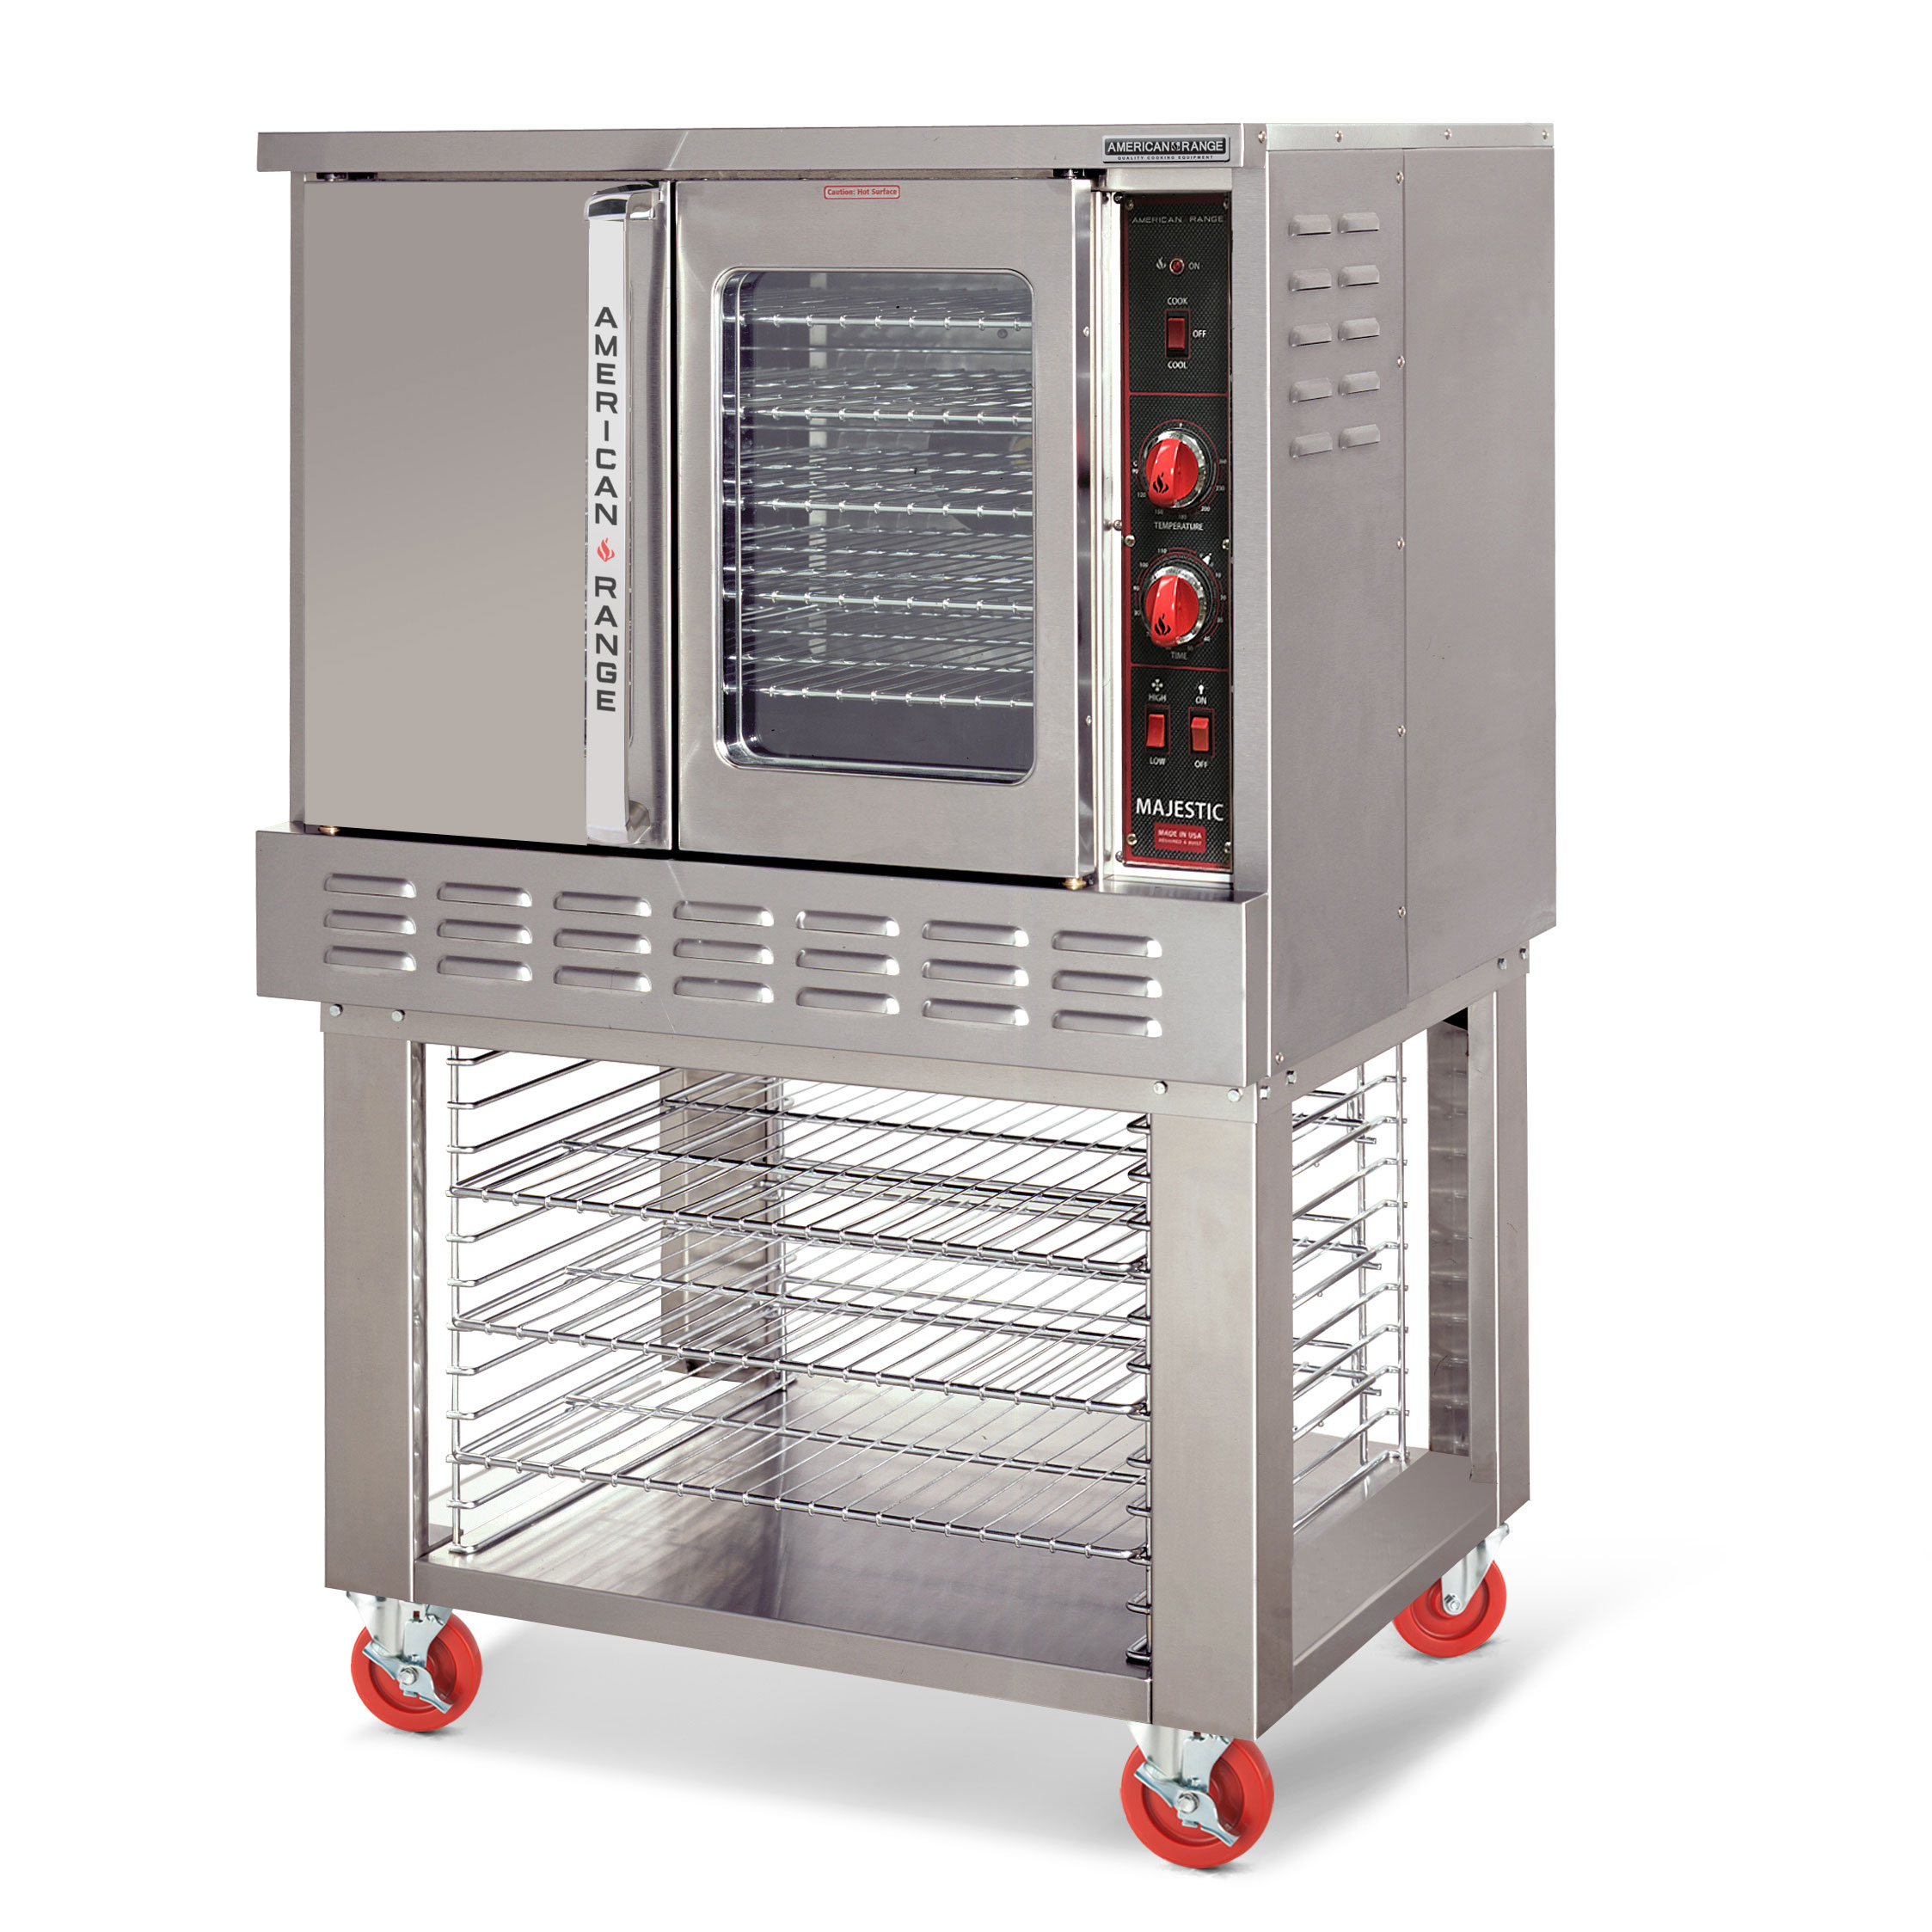 American Range MSD-1 convection oven, gas